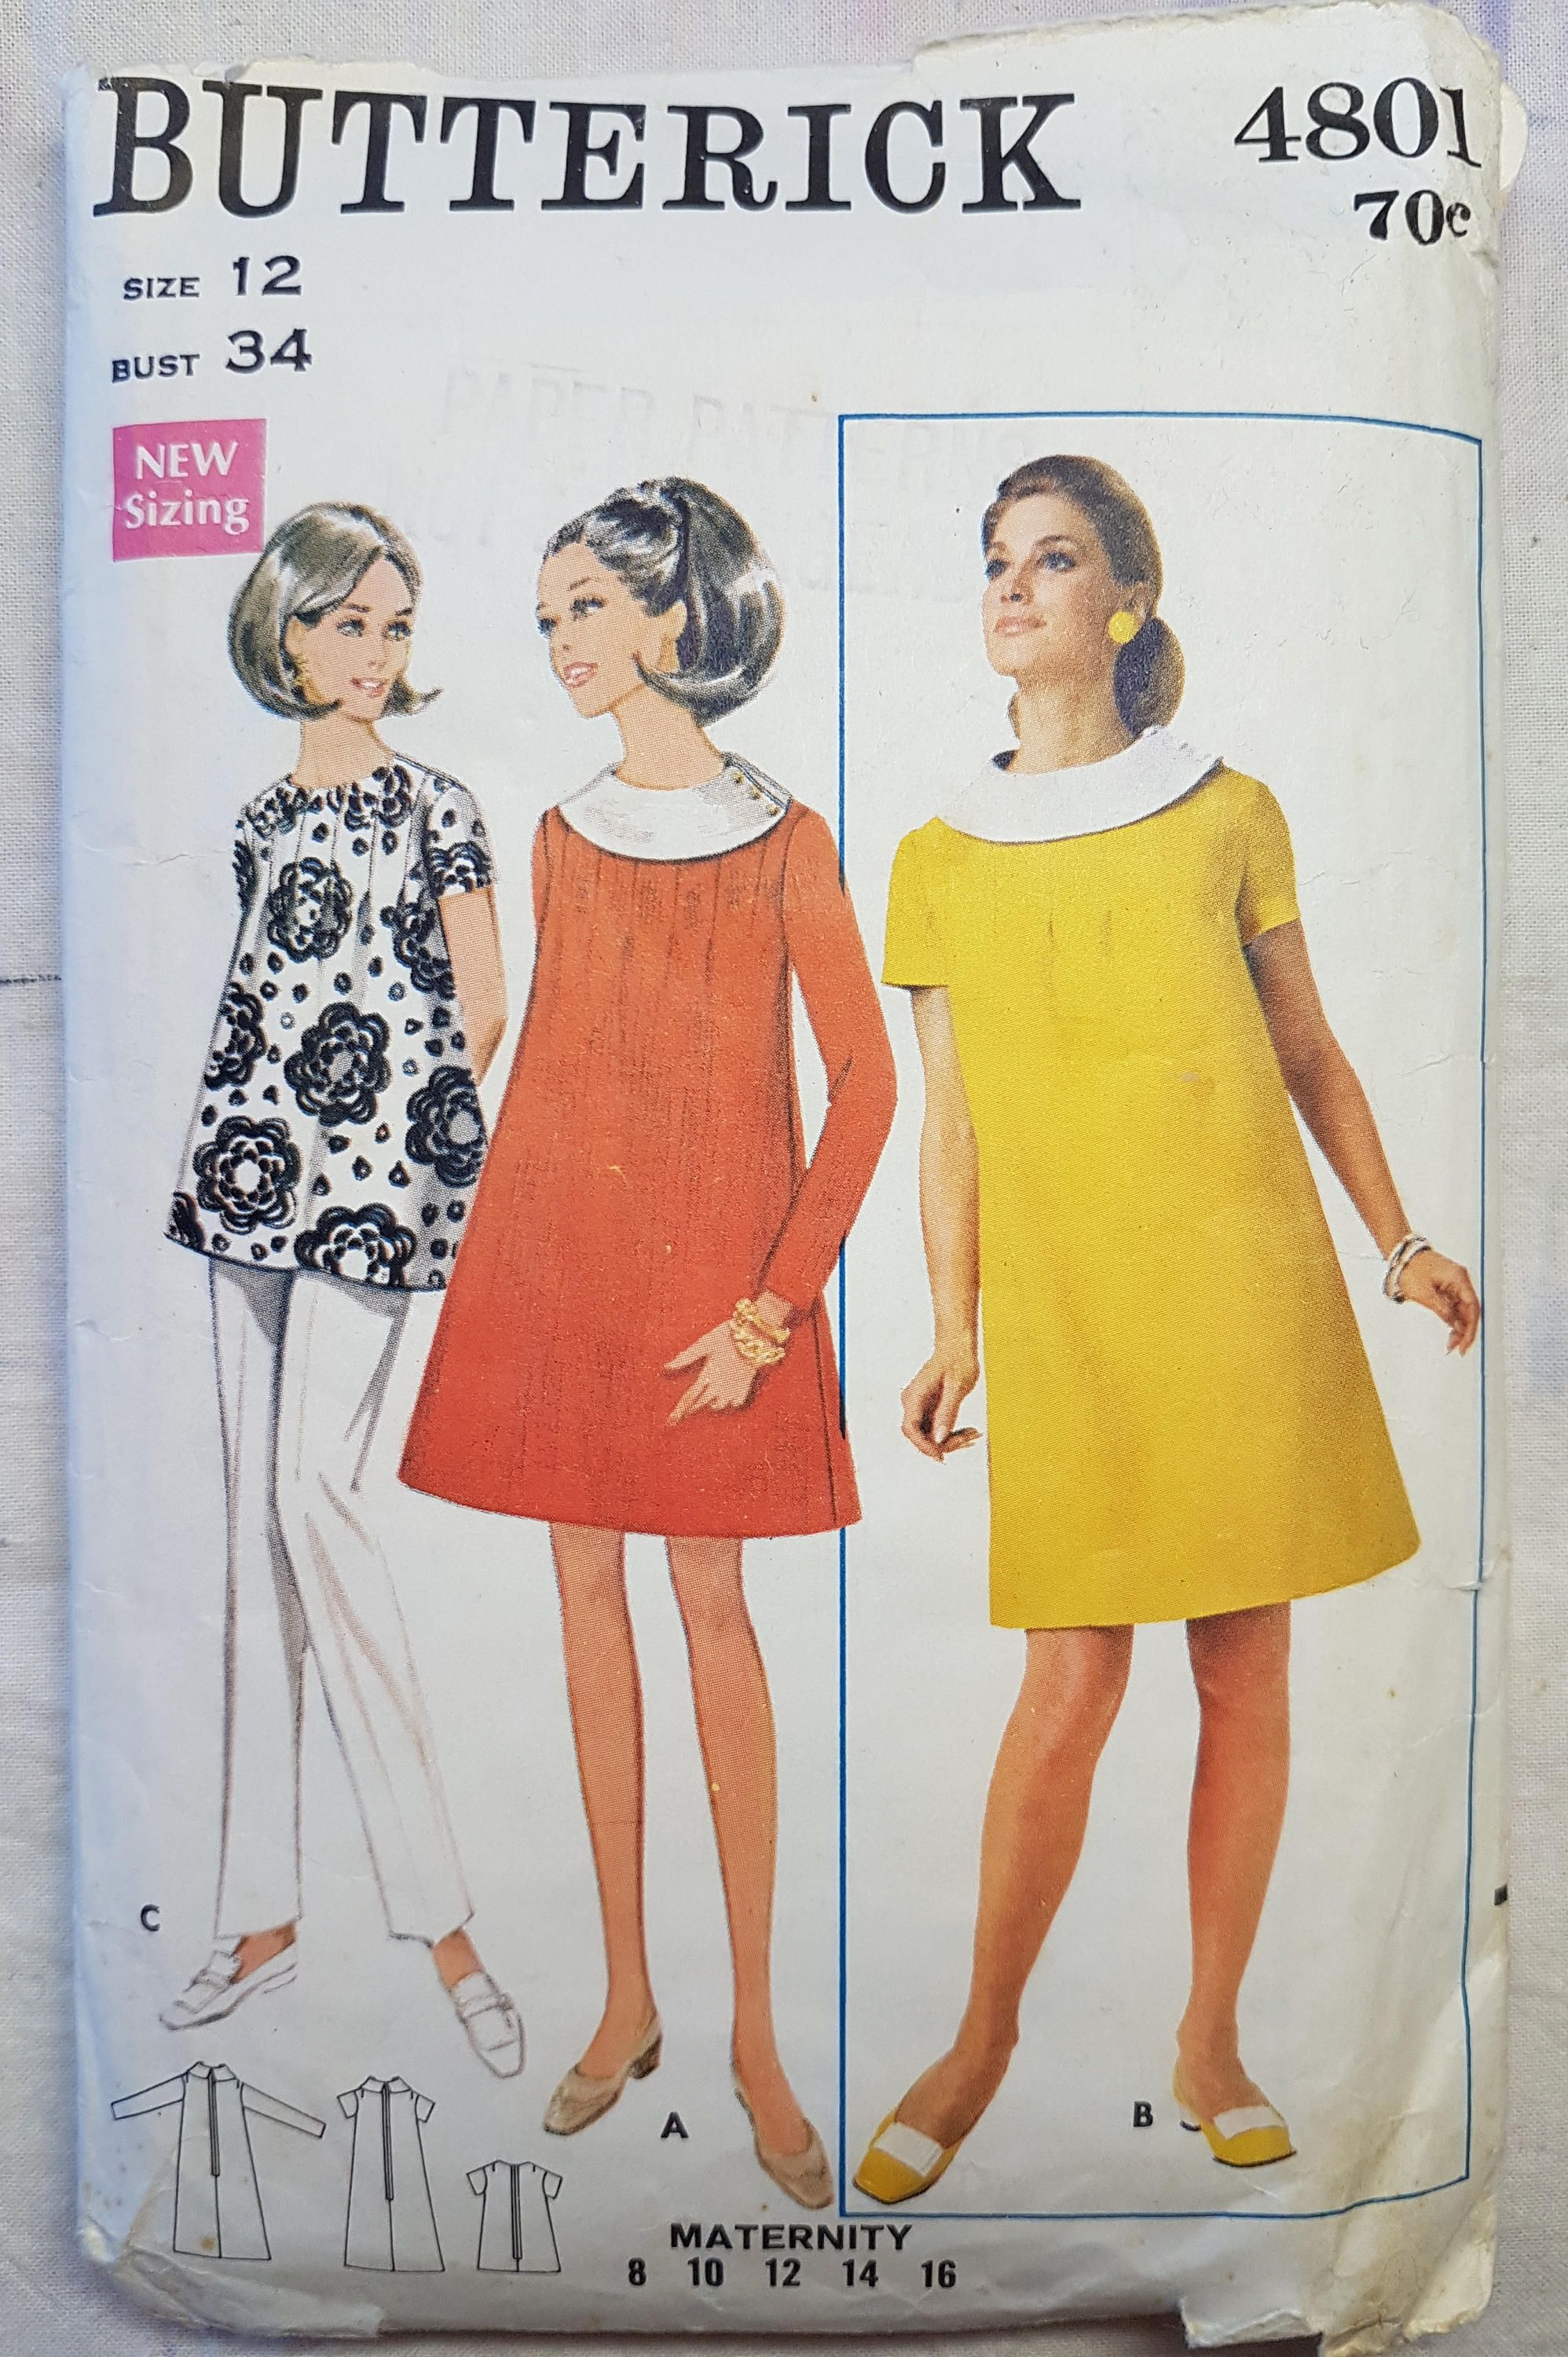 72d16841b4678 60s Butterick 4801 Maternity Dress or Maternity Top Vintage Sewing Pattern  Size 12 34inch by VintageGuardian on Etsy